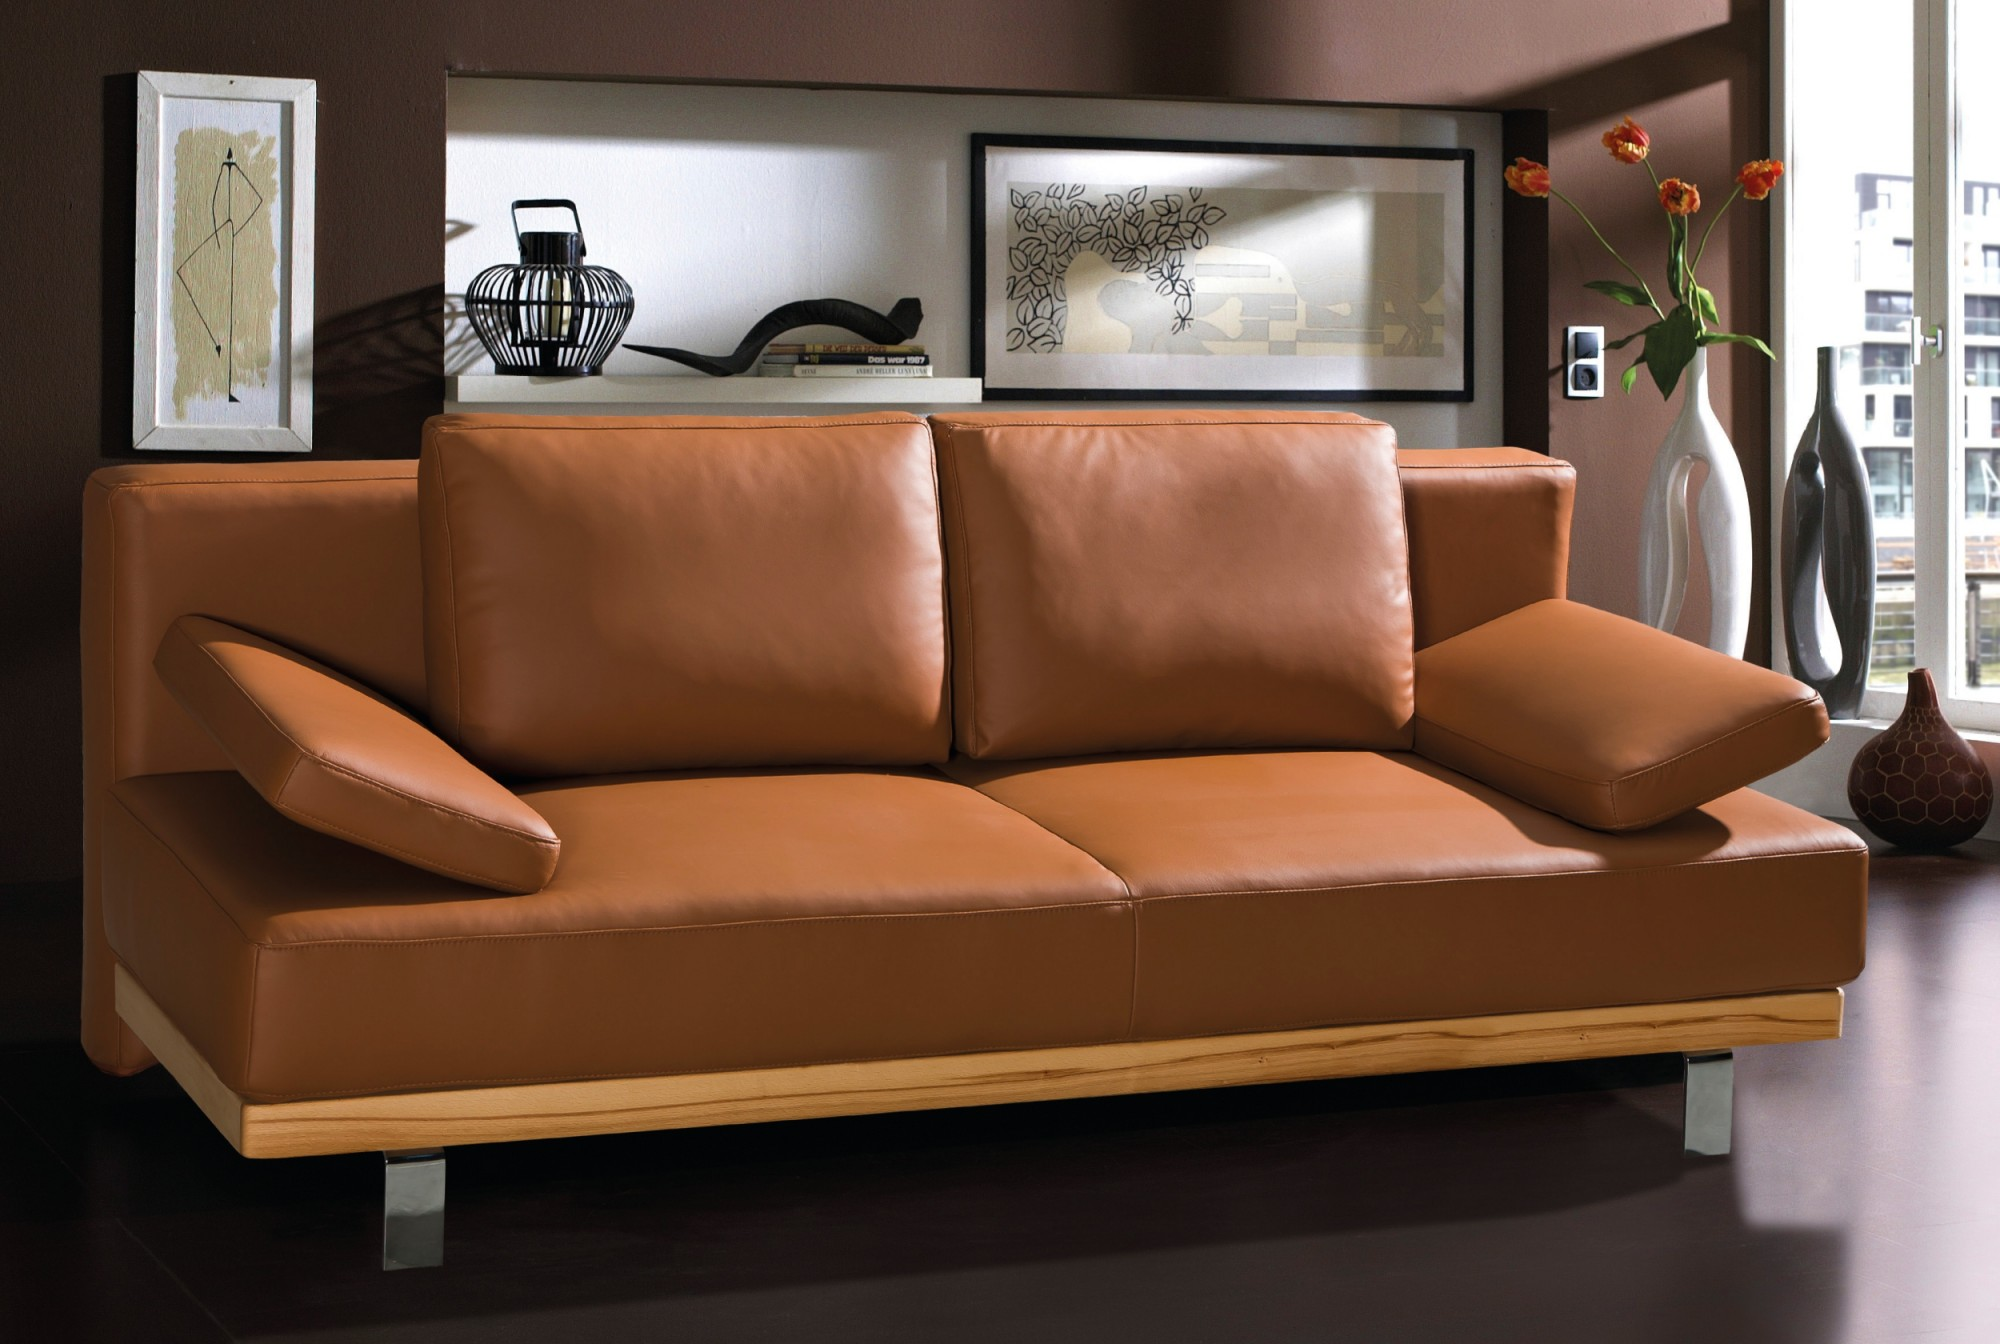 emejing sofa e sofa images. Black Bedroom Furniture Sets. Home Design Ideas